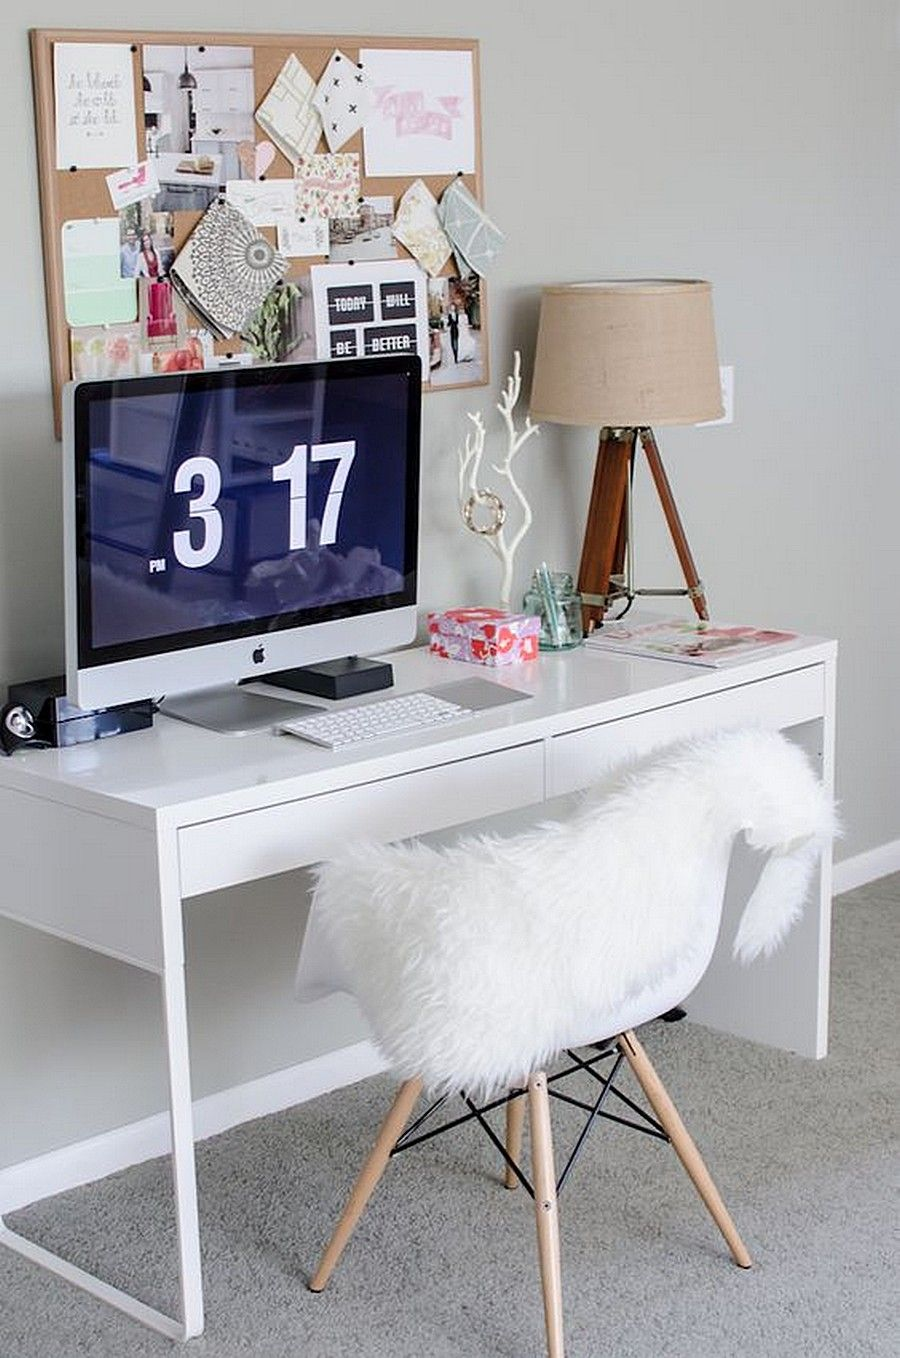 Ikea Micke Desk Scandinavian Office Ideas Home Office Decor Micke Desk Ikea Micke Desk